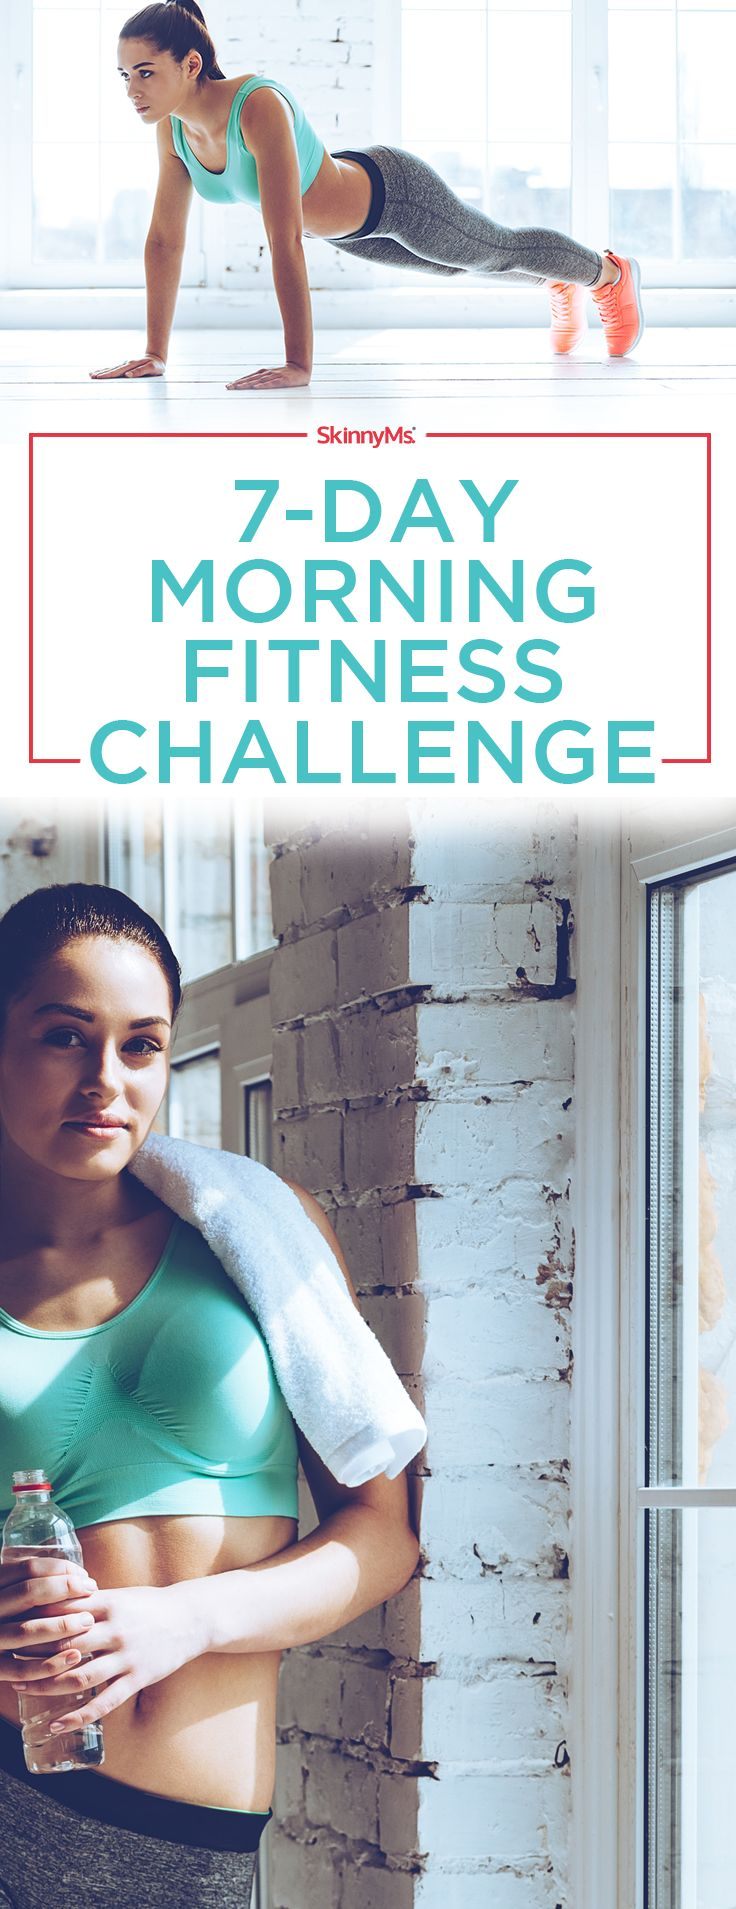 Take the 7 Day Morning Fitness Challenge!